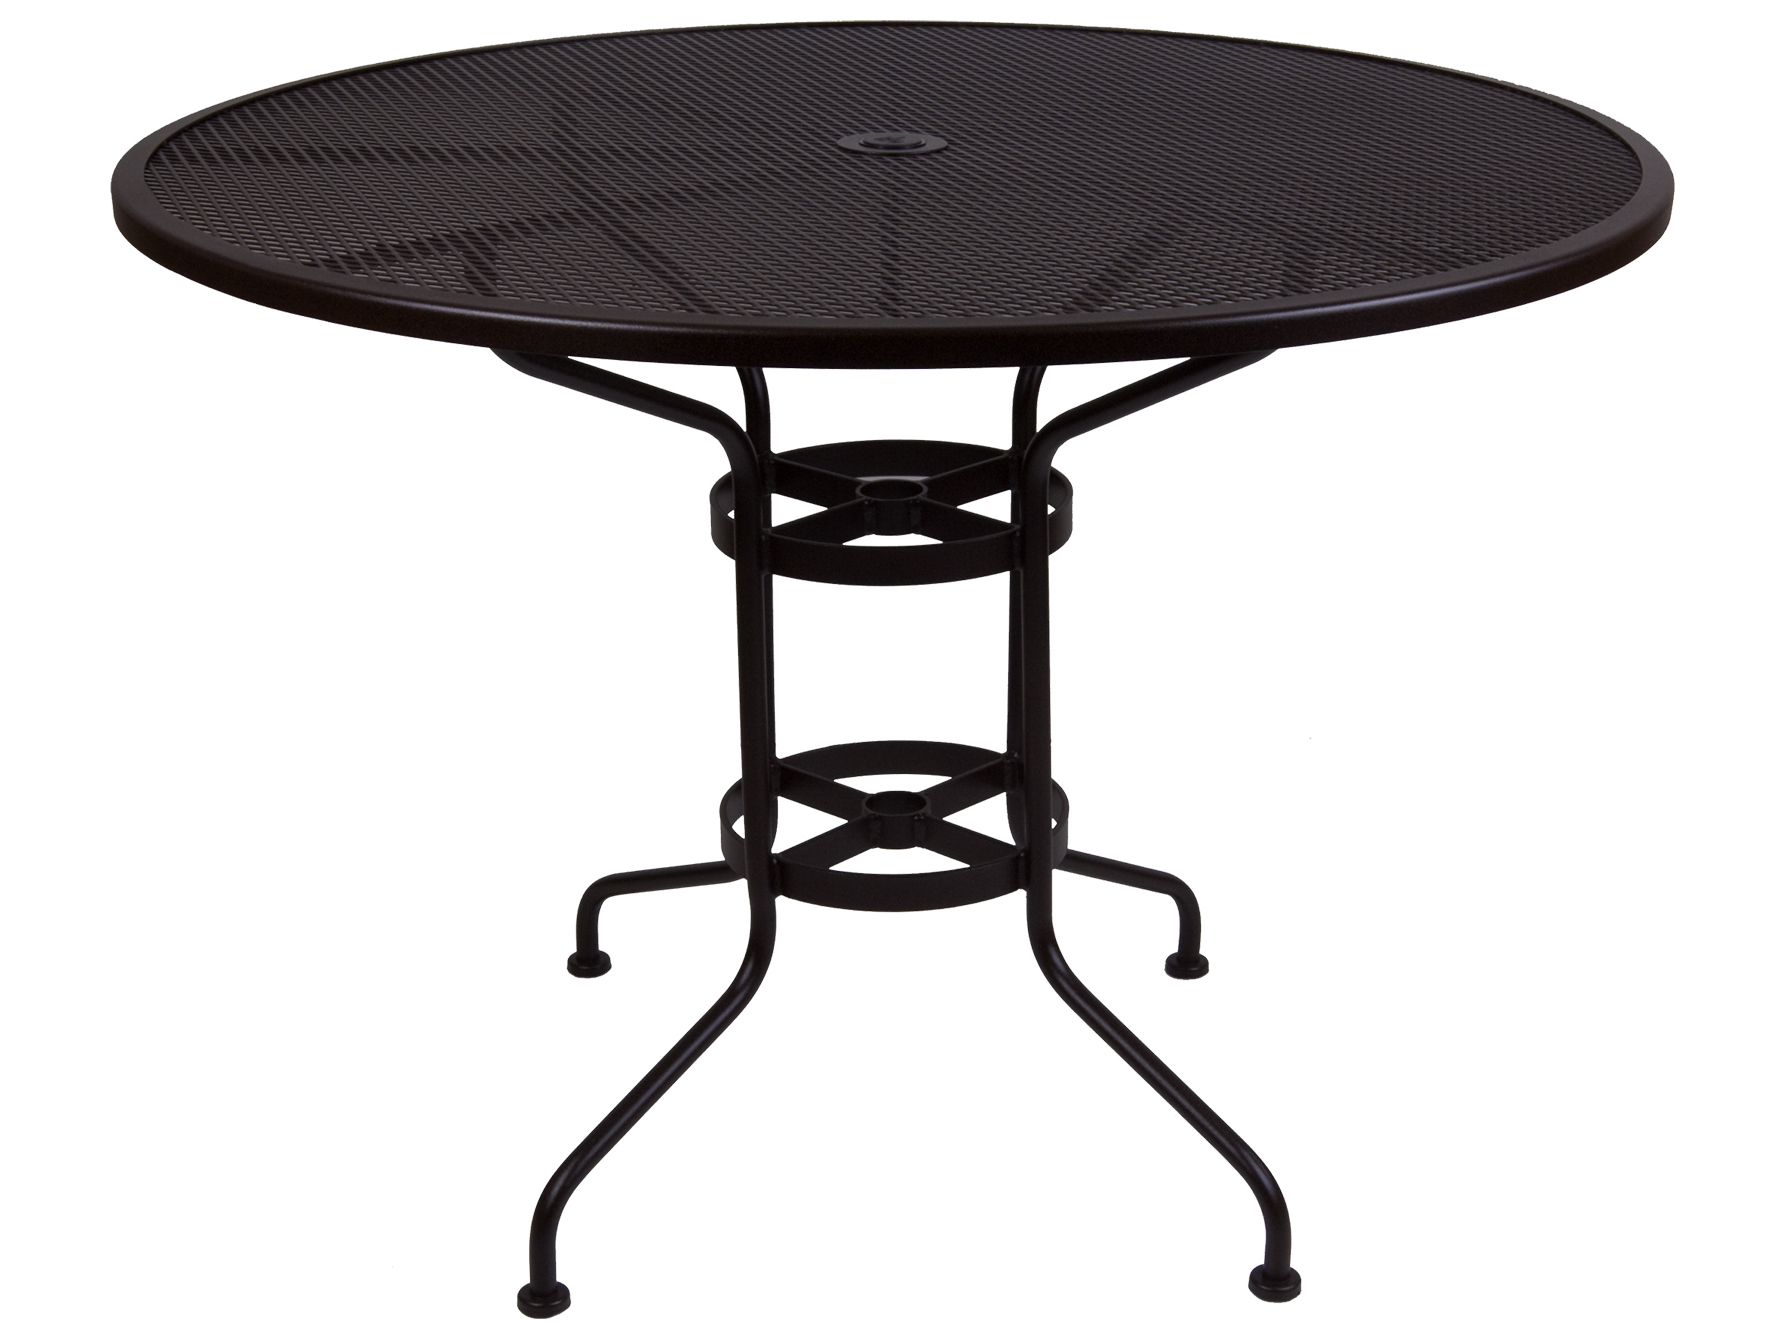 Ow Lee Micro Mesh Wrought Iron 48 Round Counter Table With